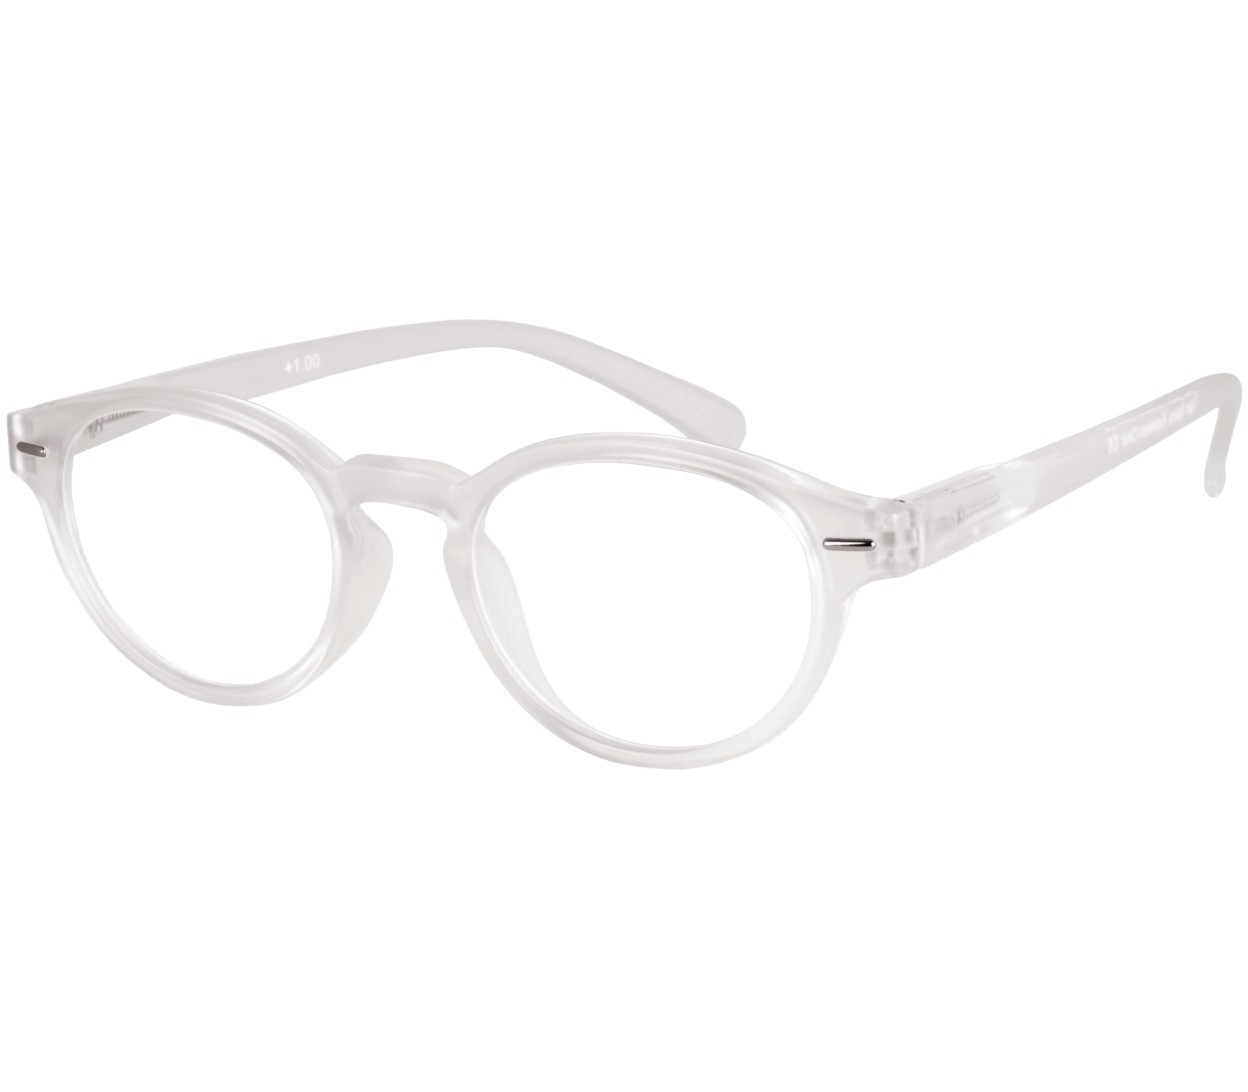 Main Image (Angle) - Espresso (Clear) Retro Reading Glasses